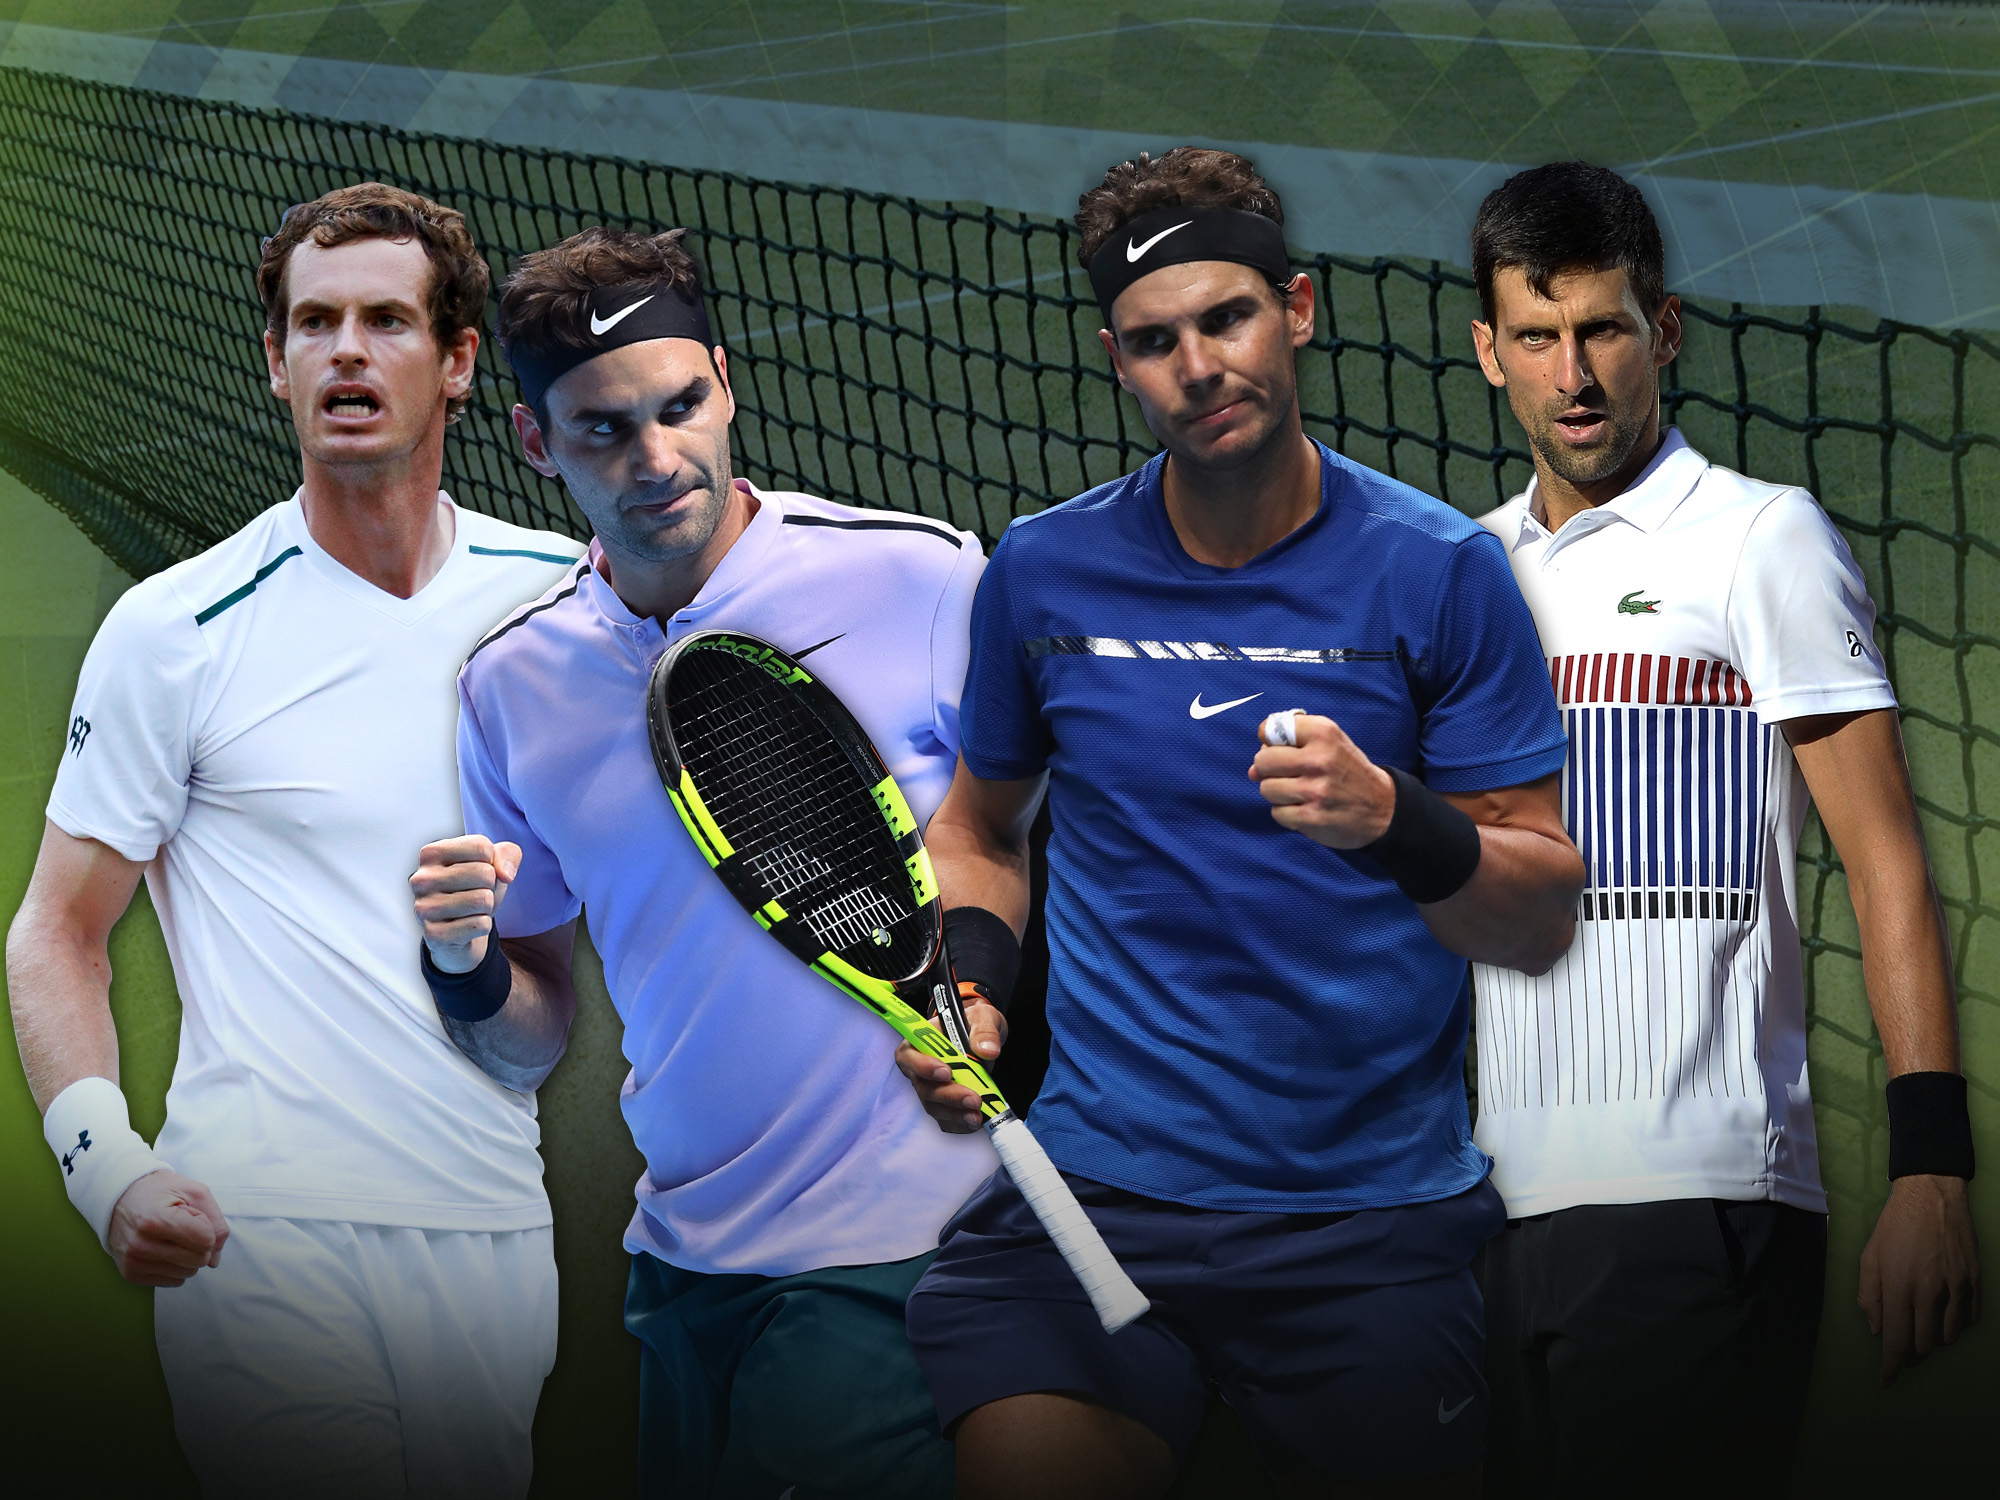 Will Federer & Nadal rule again? How good will Murray & Djokovic be? Five ATP narratives to watch out for in 2018